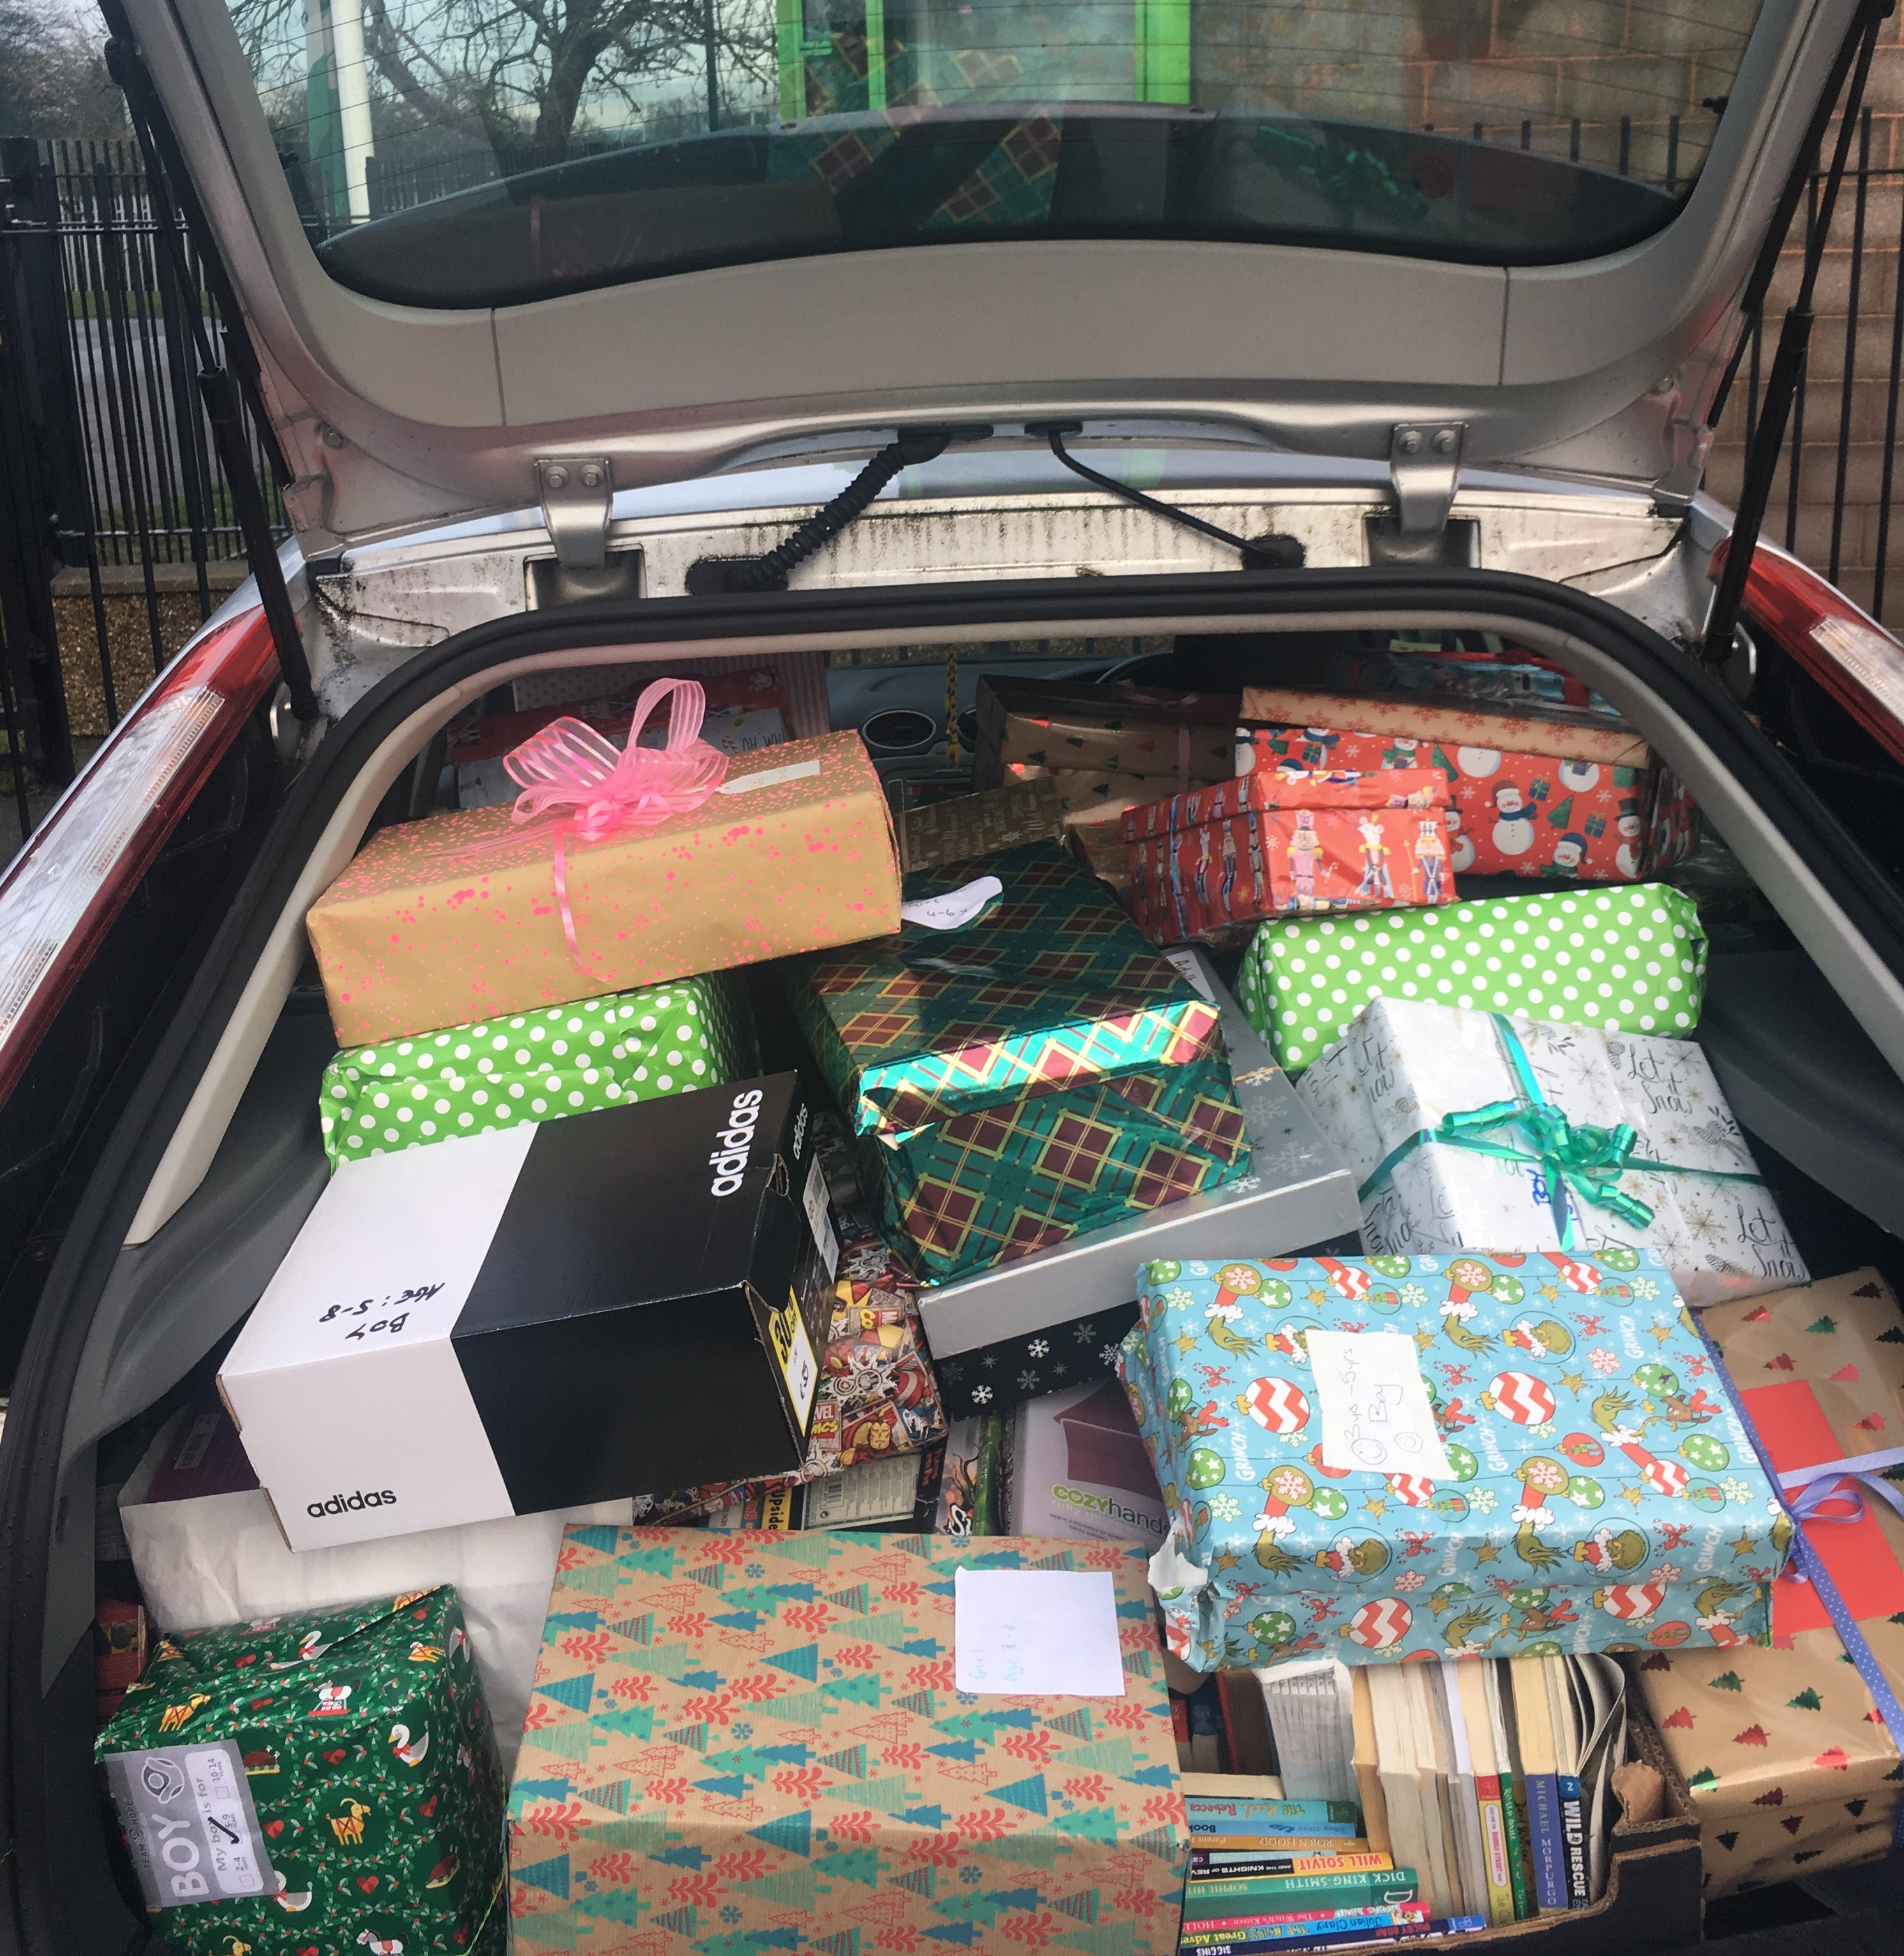 6th Class #FillAFocus Shoebox Appeal for Inner City Helping Homeless